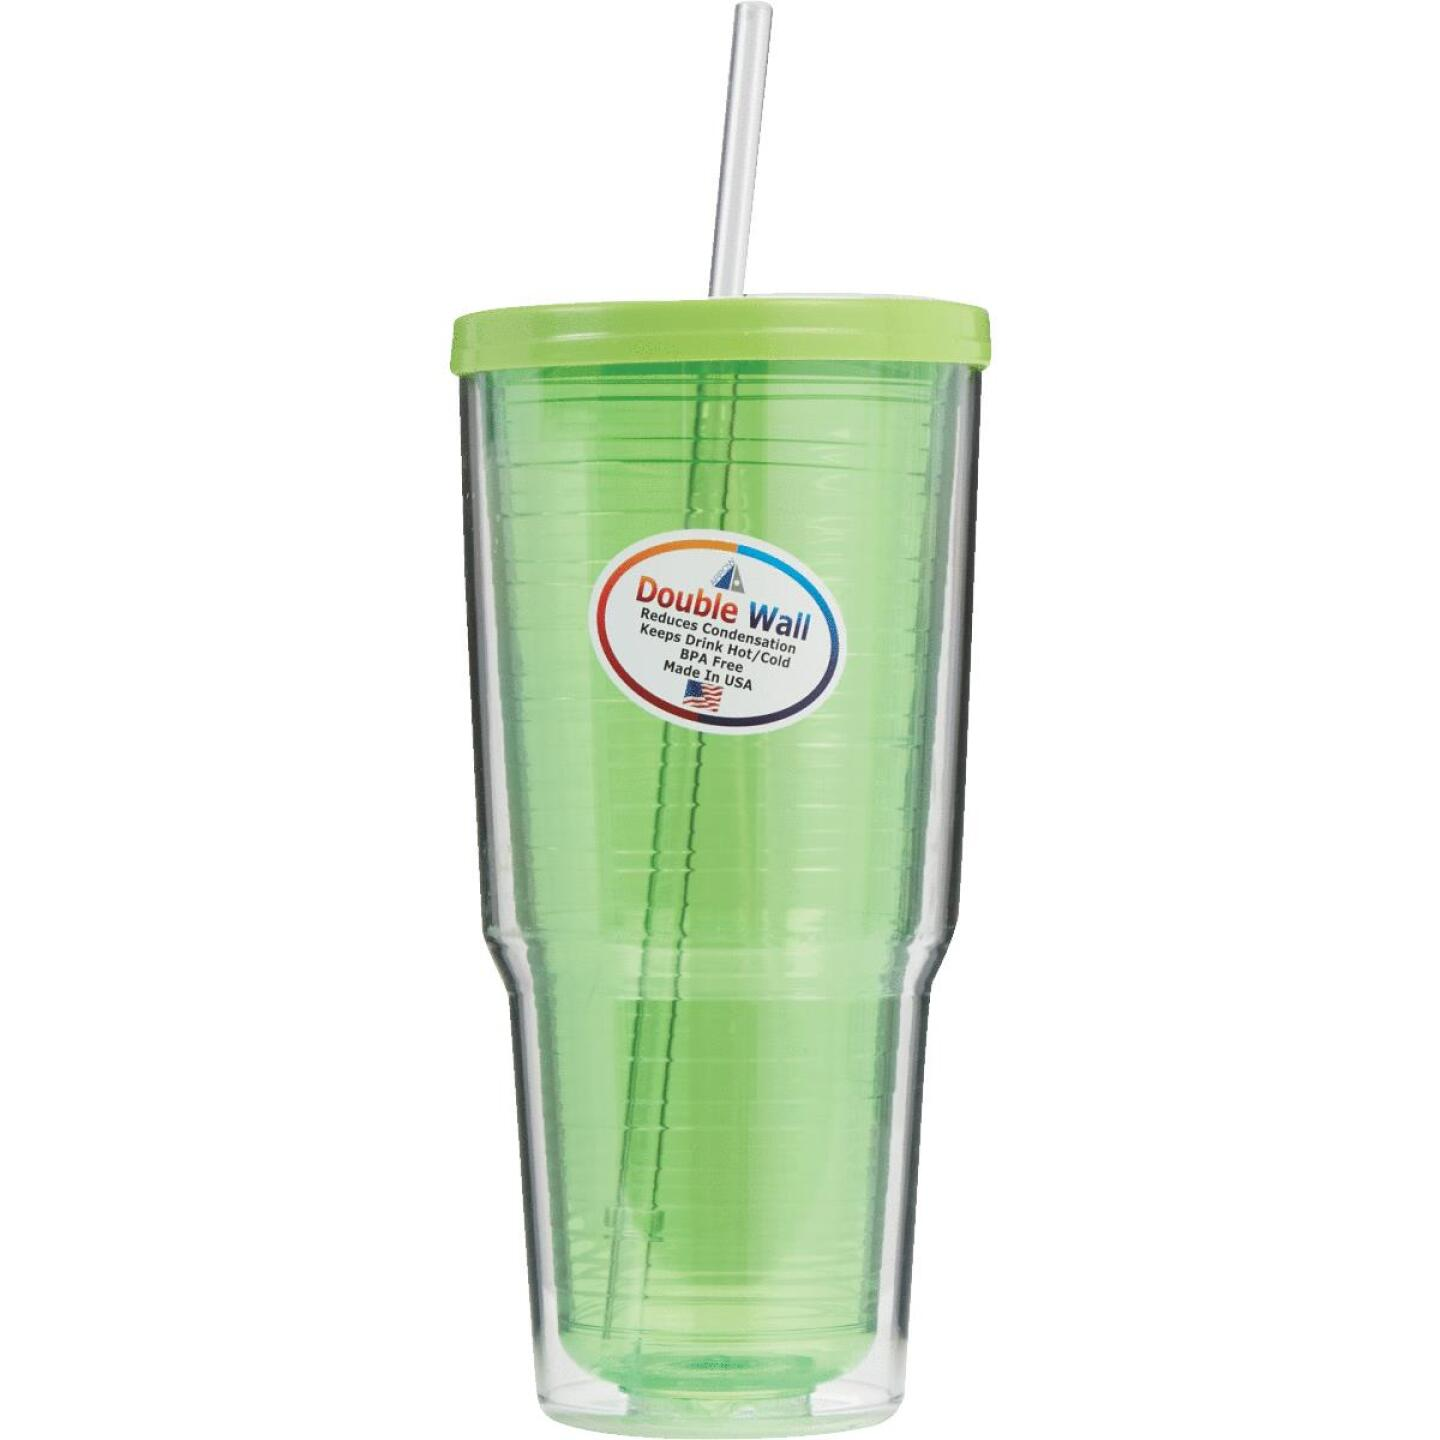 Arrow 24 Oz. Double Wall Insulated Tumbler Image 4